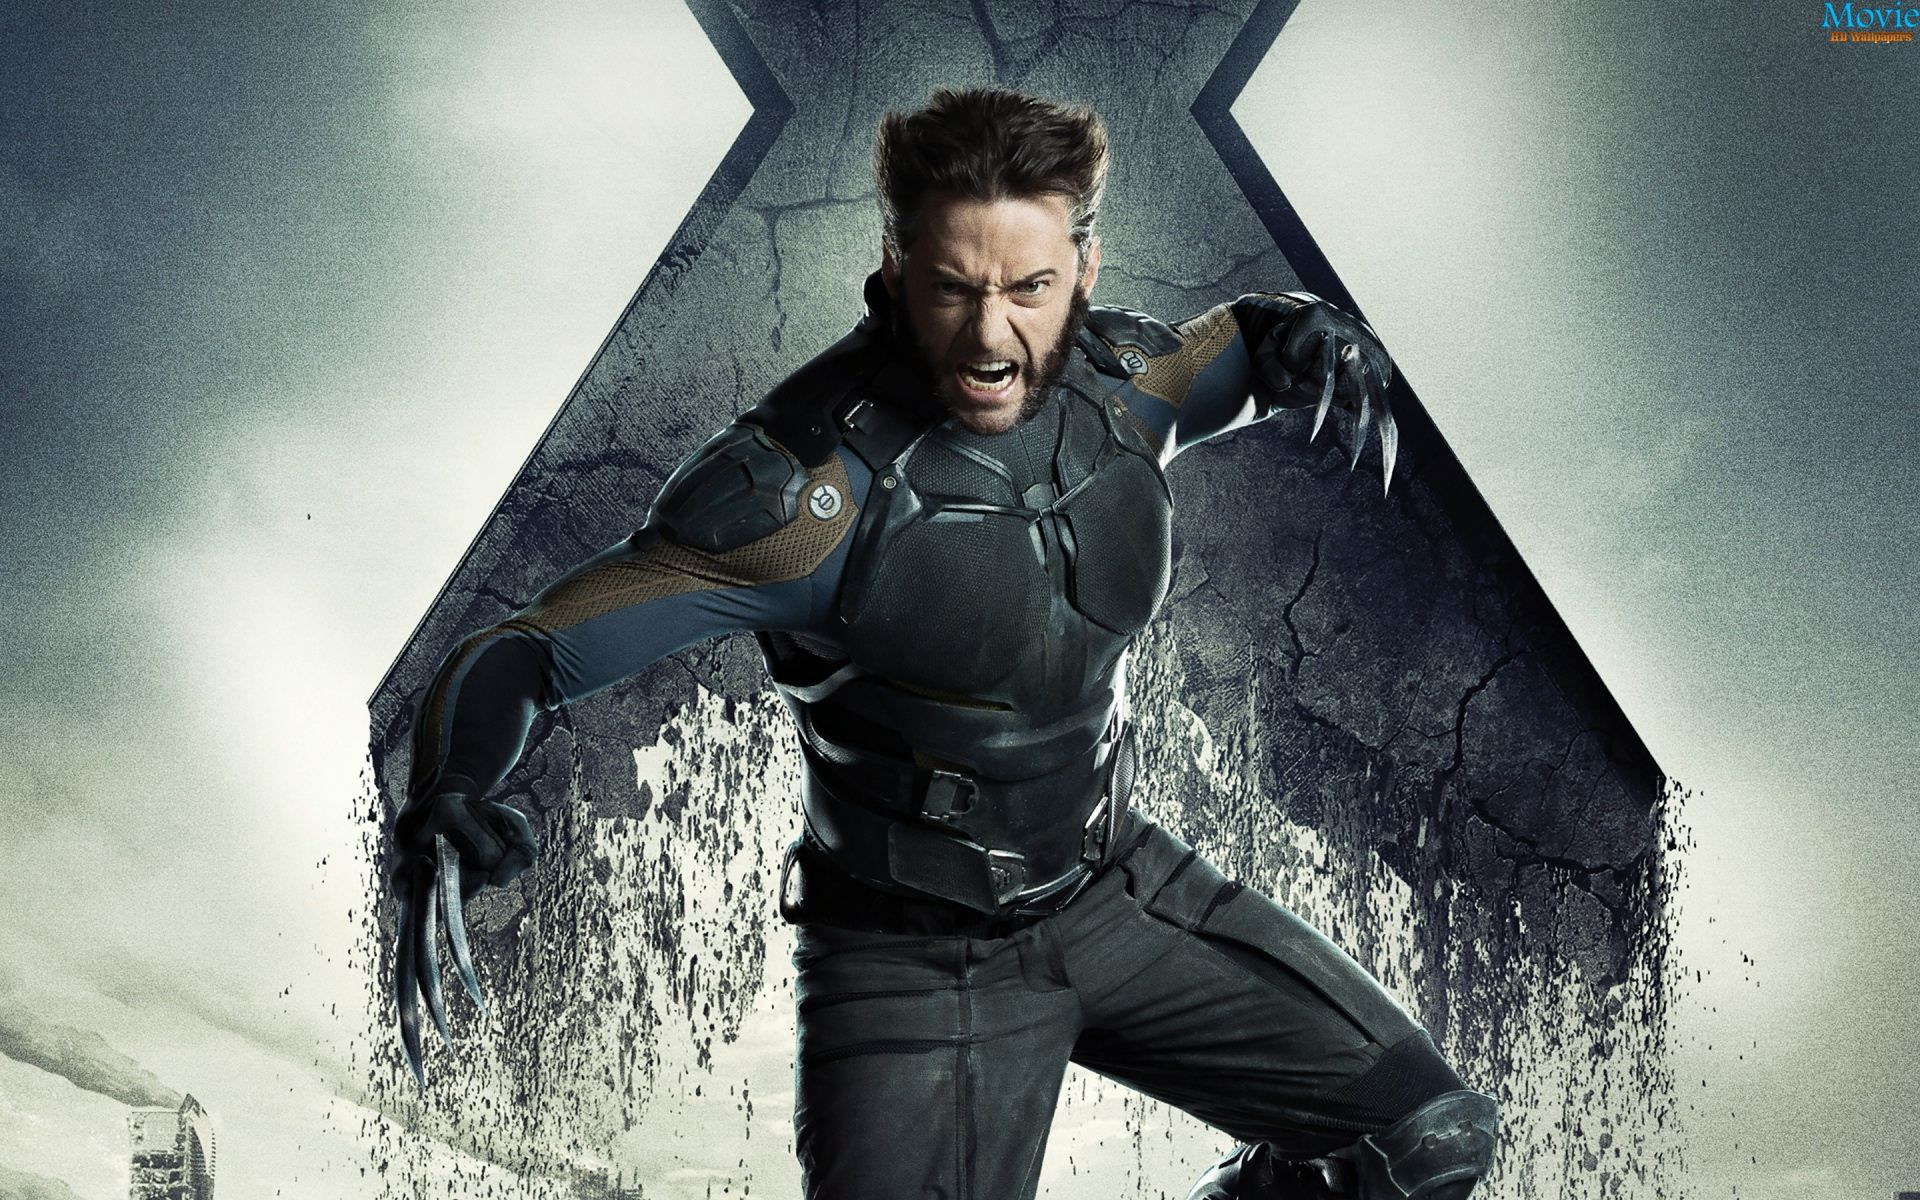 X Men Days of Future Past New Posters Movie HD Wallpapers 1920x1200